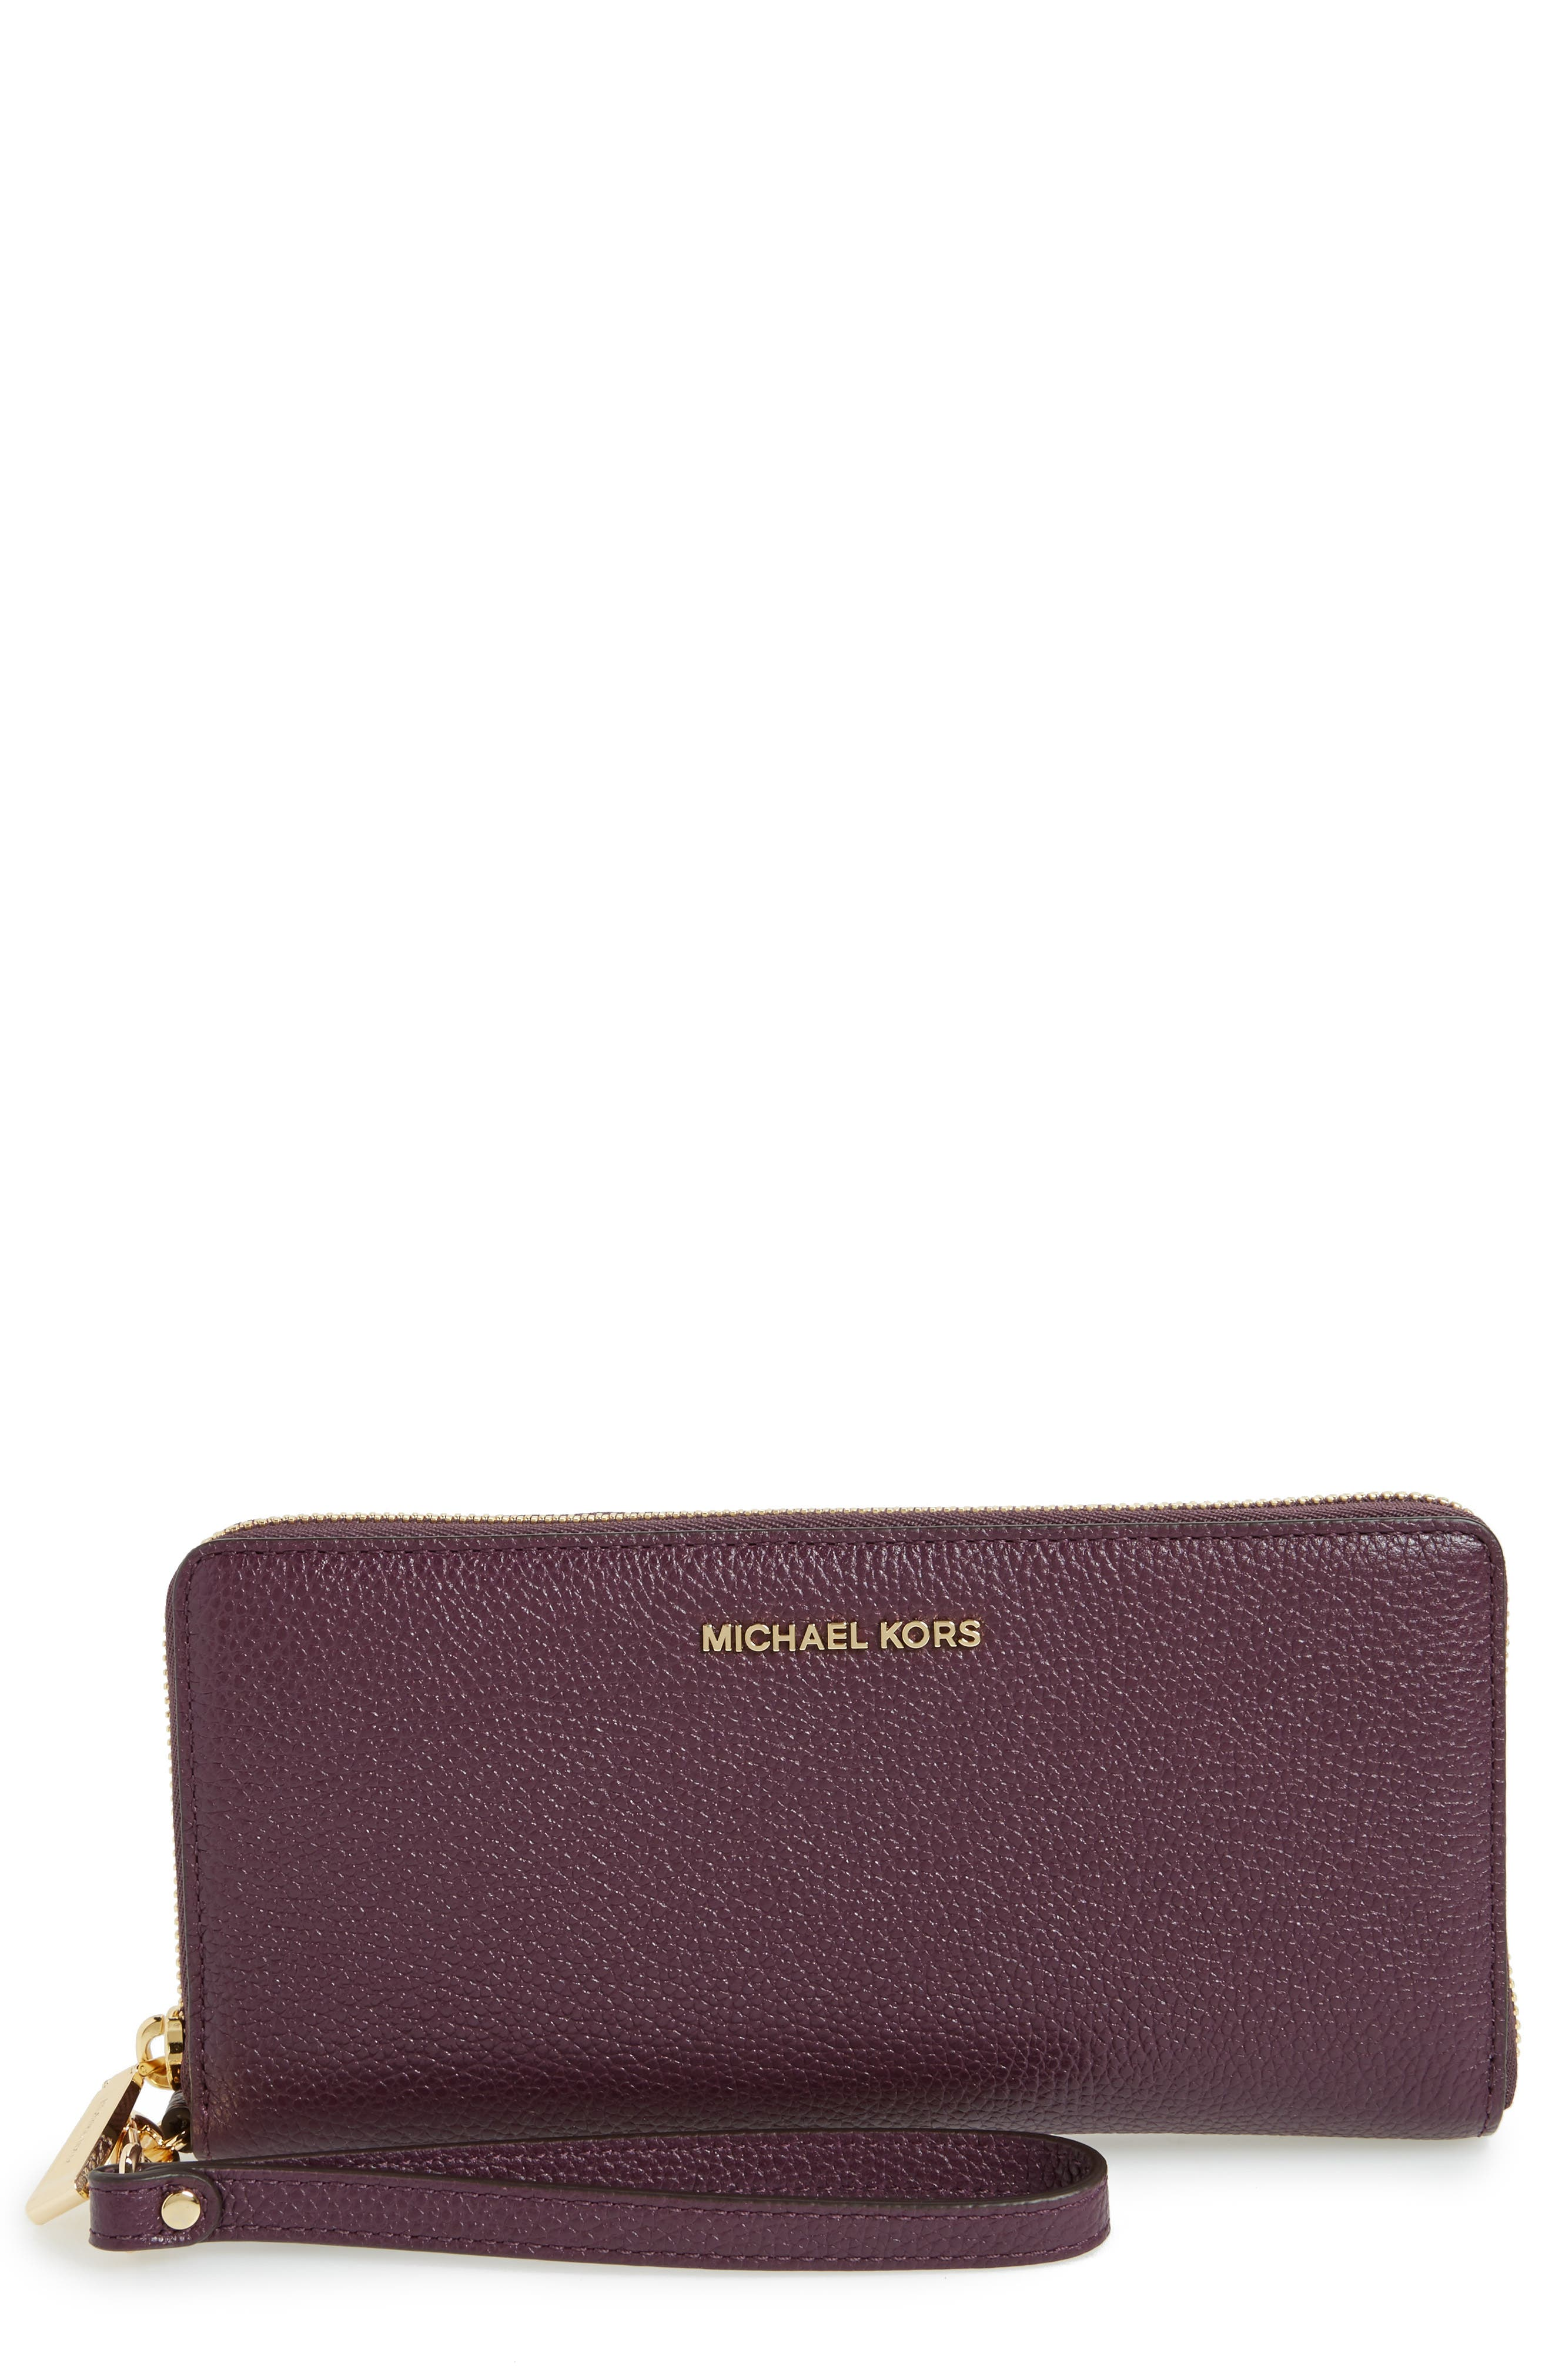 'Mercer' Leather Continental Wallet,                             Main thumbnail 1, color,                             599